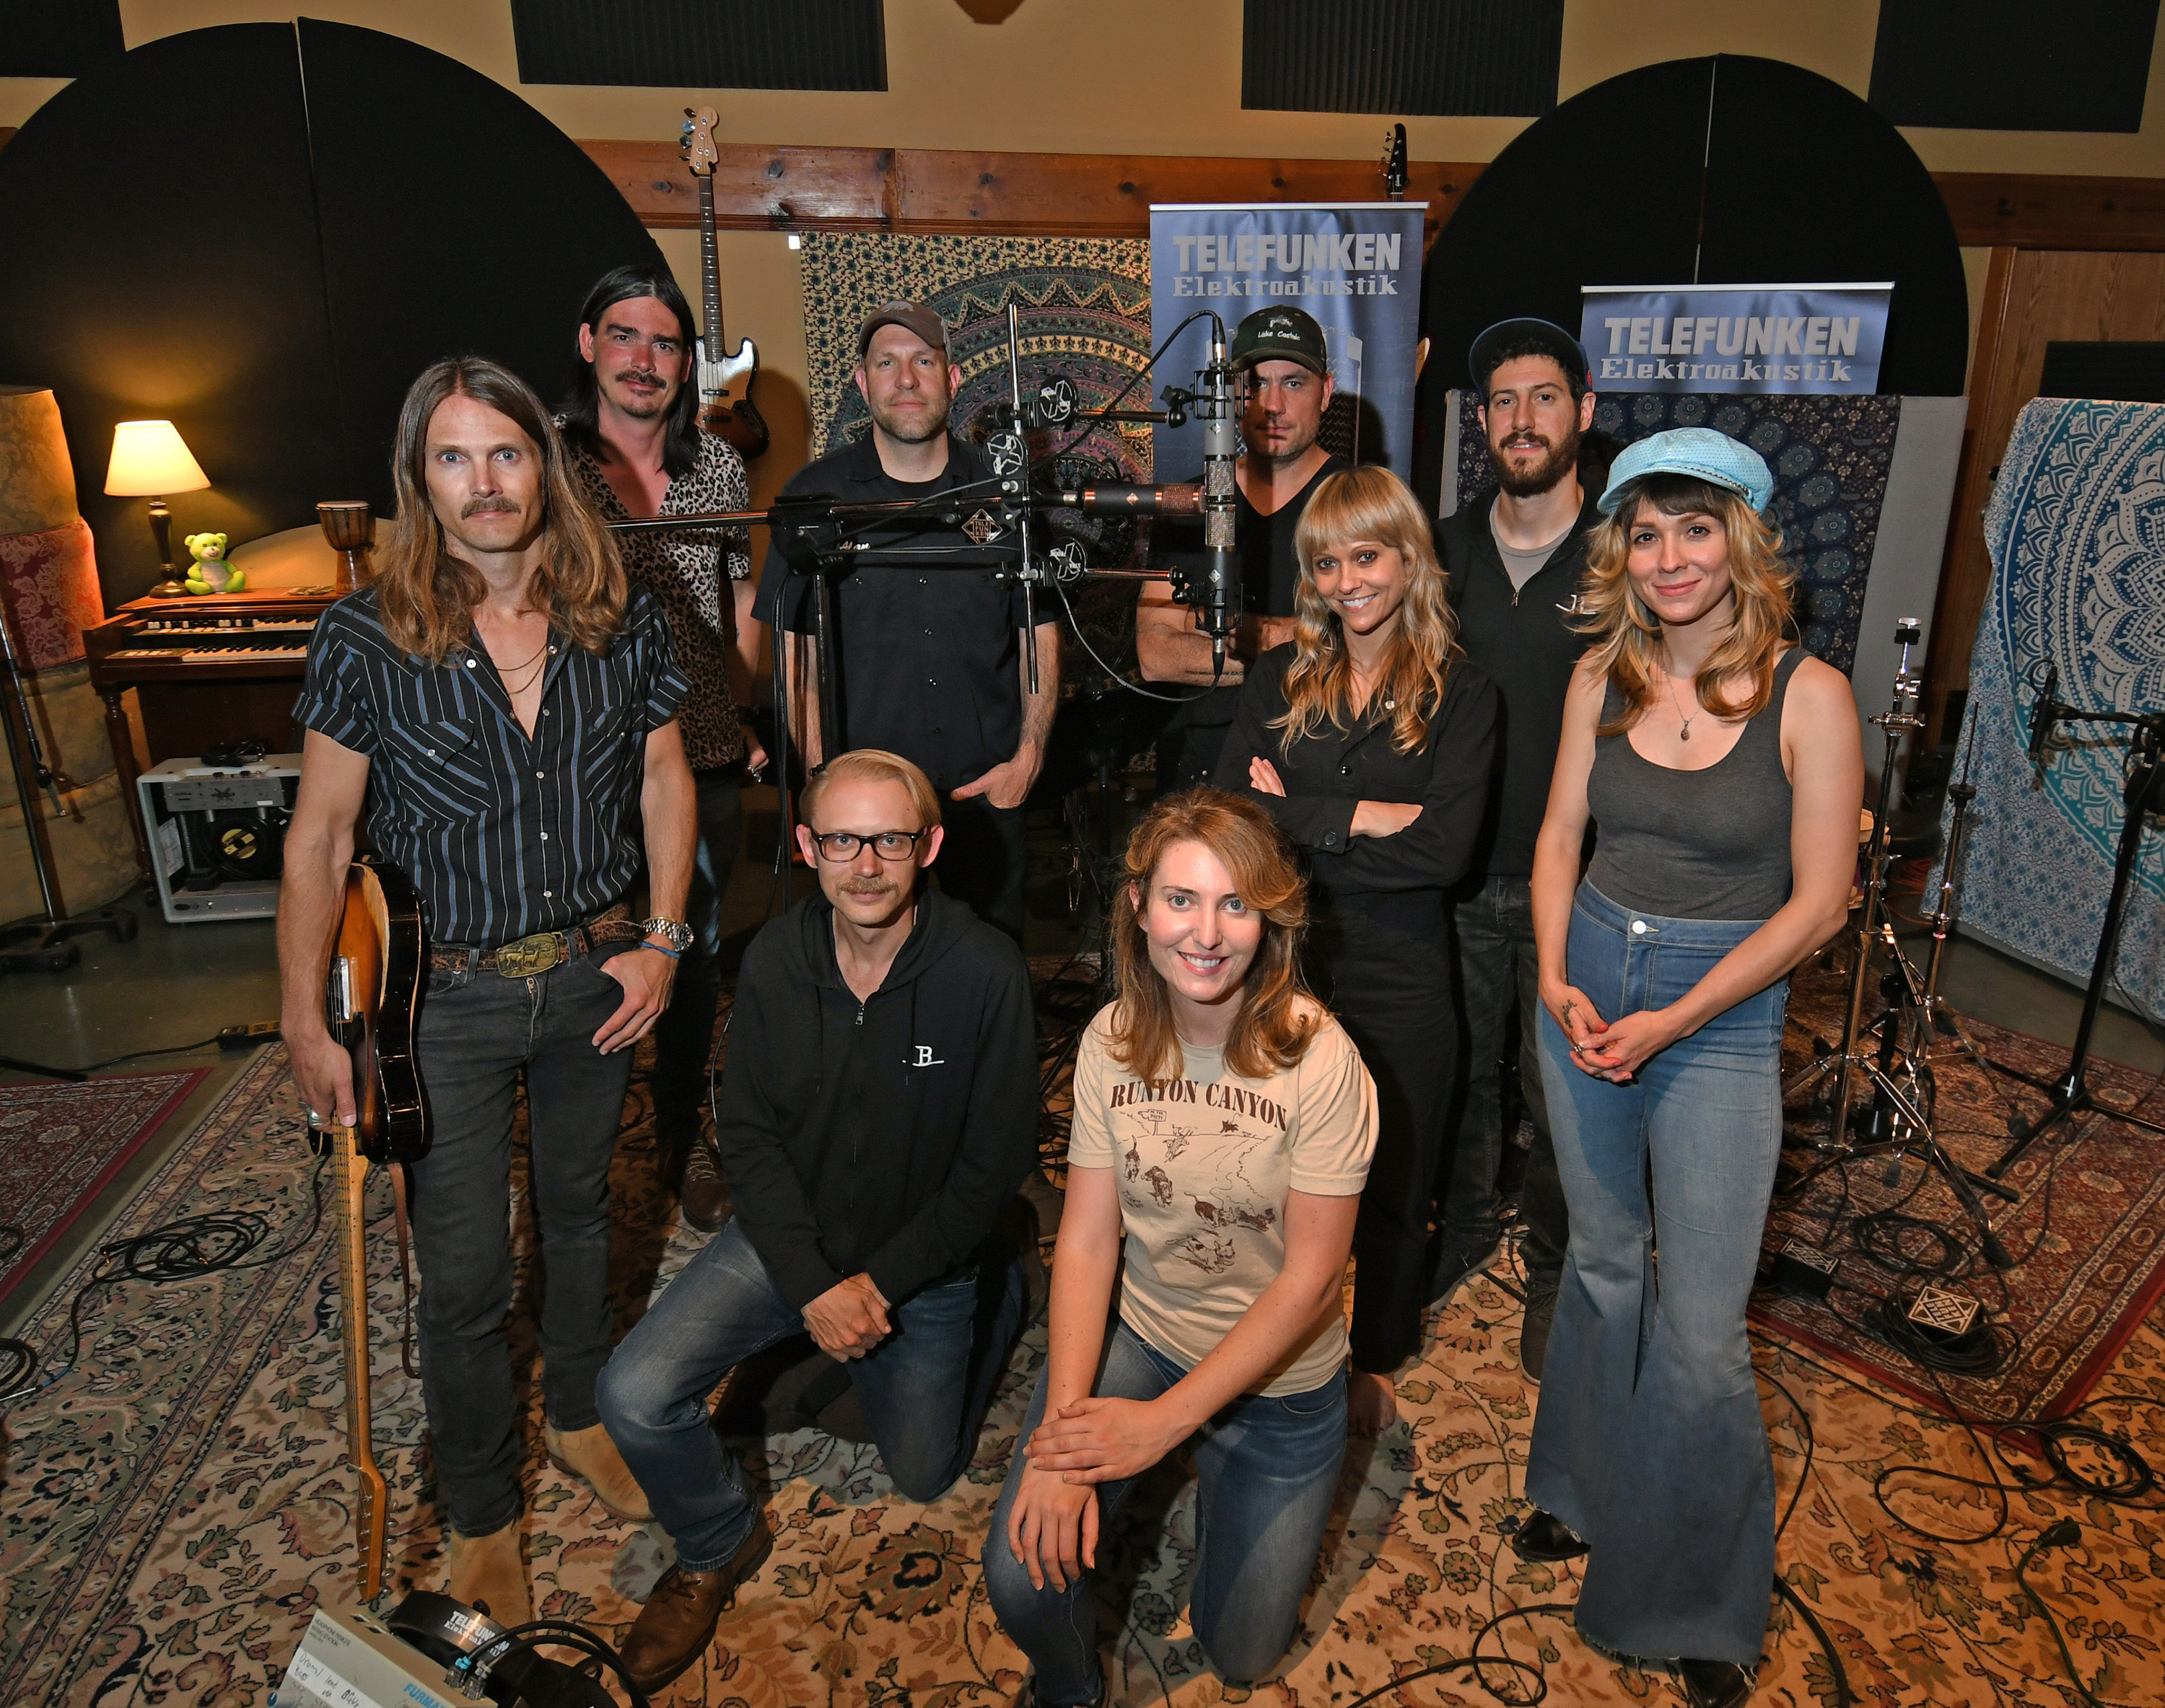 L to R: Eli Wulmeier (electric guitar, vocals), Ben Reddell (Rhodes), Alan Venitosh (TELEFUNKEN Director Of Operations), Daniel Christiansen (videographer), Kay Myers (backing vocals), Phil Feinman (Bedrock LA owner), Sei Sie Benhoff (backing vocals), Eric Rennaker (Bedrock Studio Engineer, kneeling left), Donniel Drew (videographer, kneeling right).